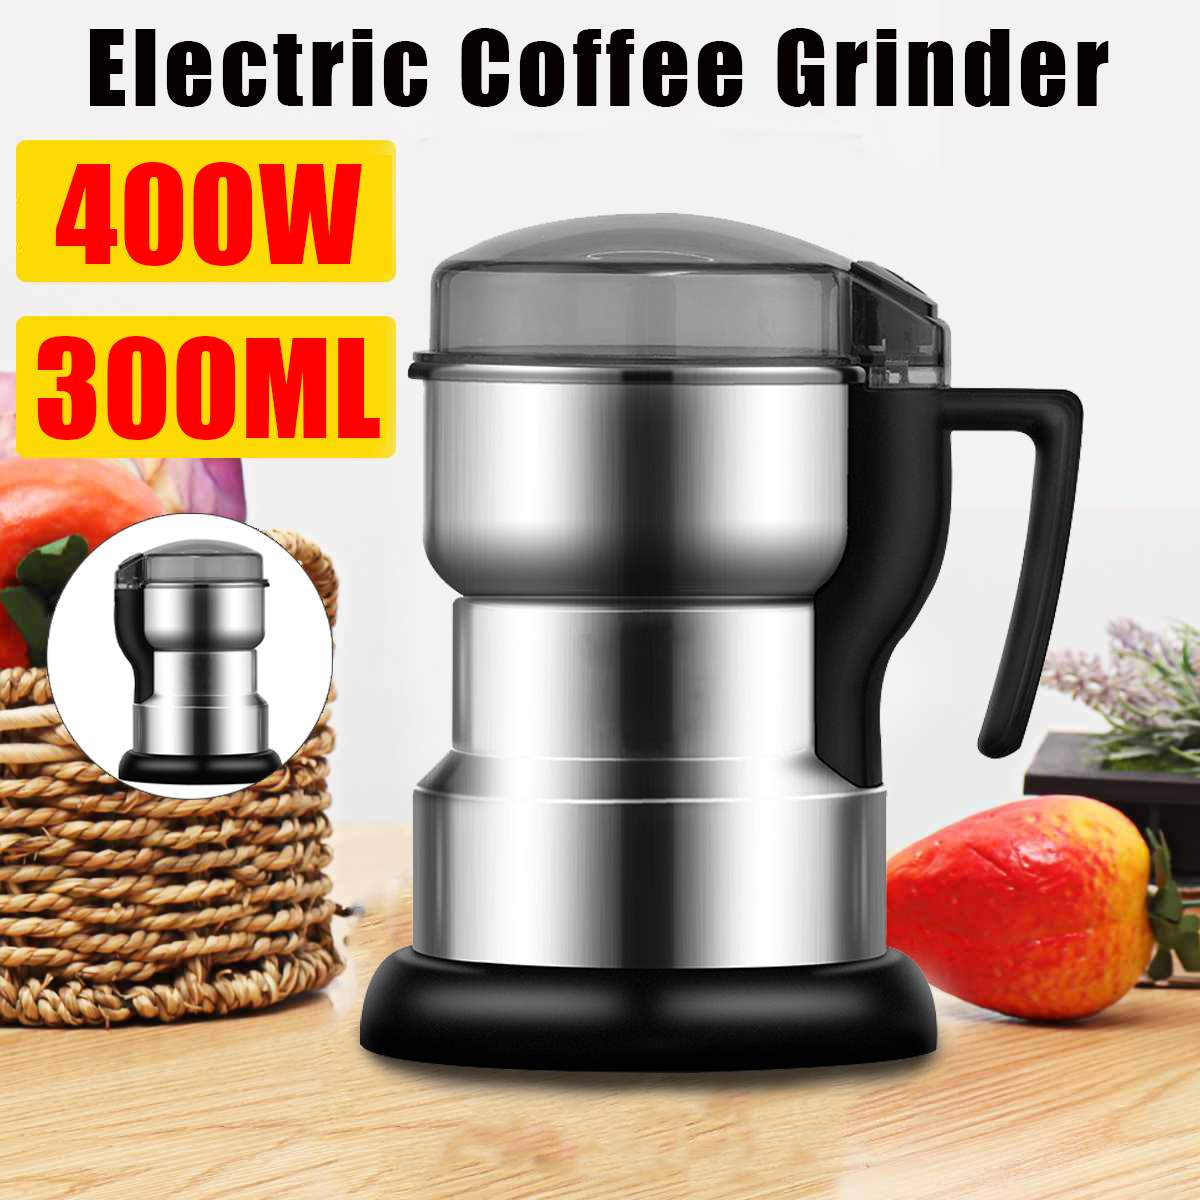 Multifunctional Home Coffe Grinder Machine Kitchen Cereals Nuts Beans Spices Grains Grinding Machine Electric Coffee Grinder